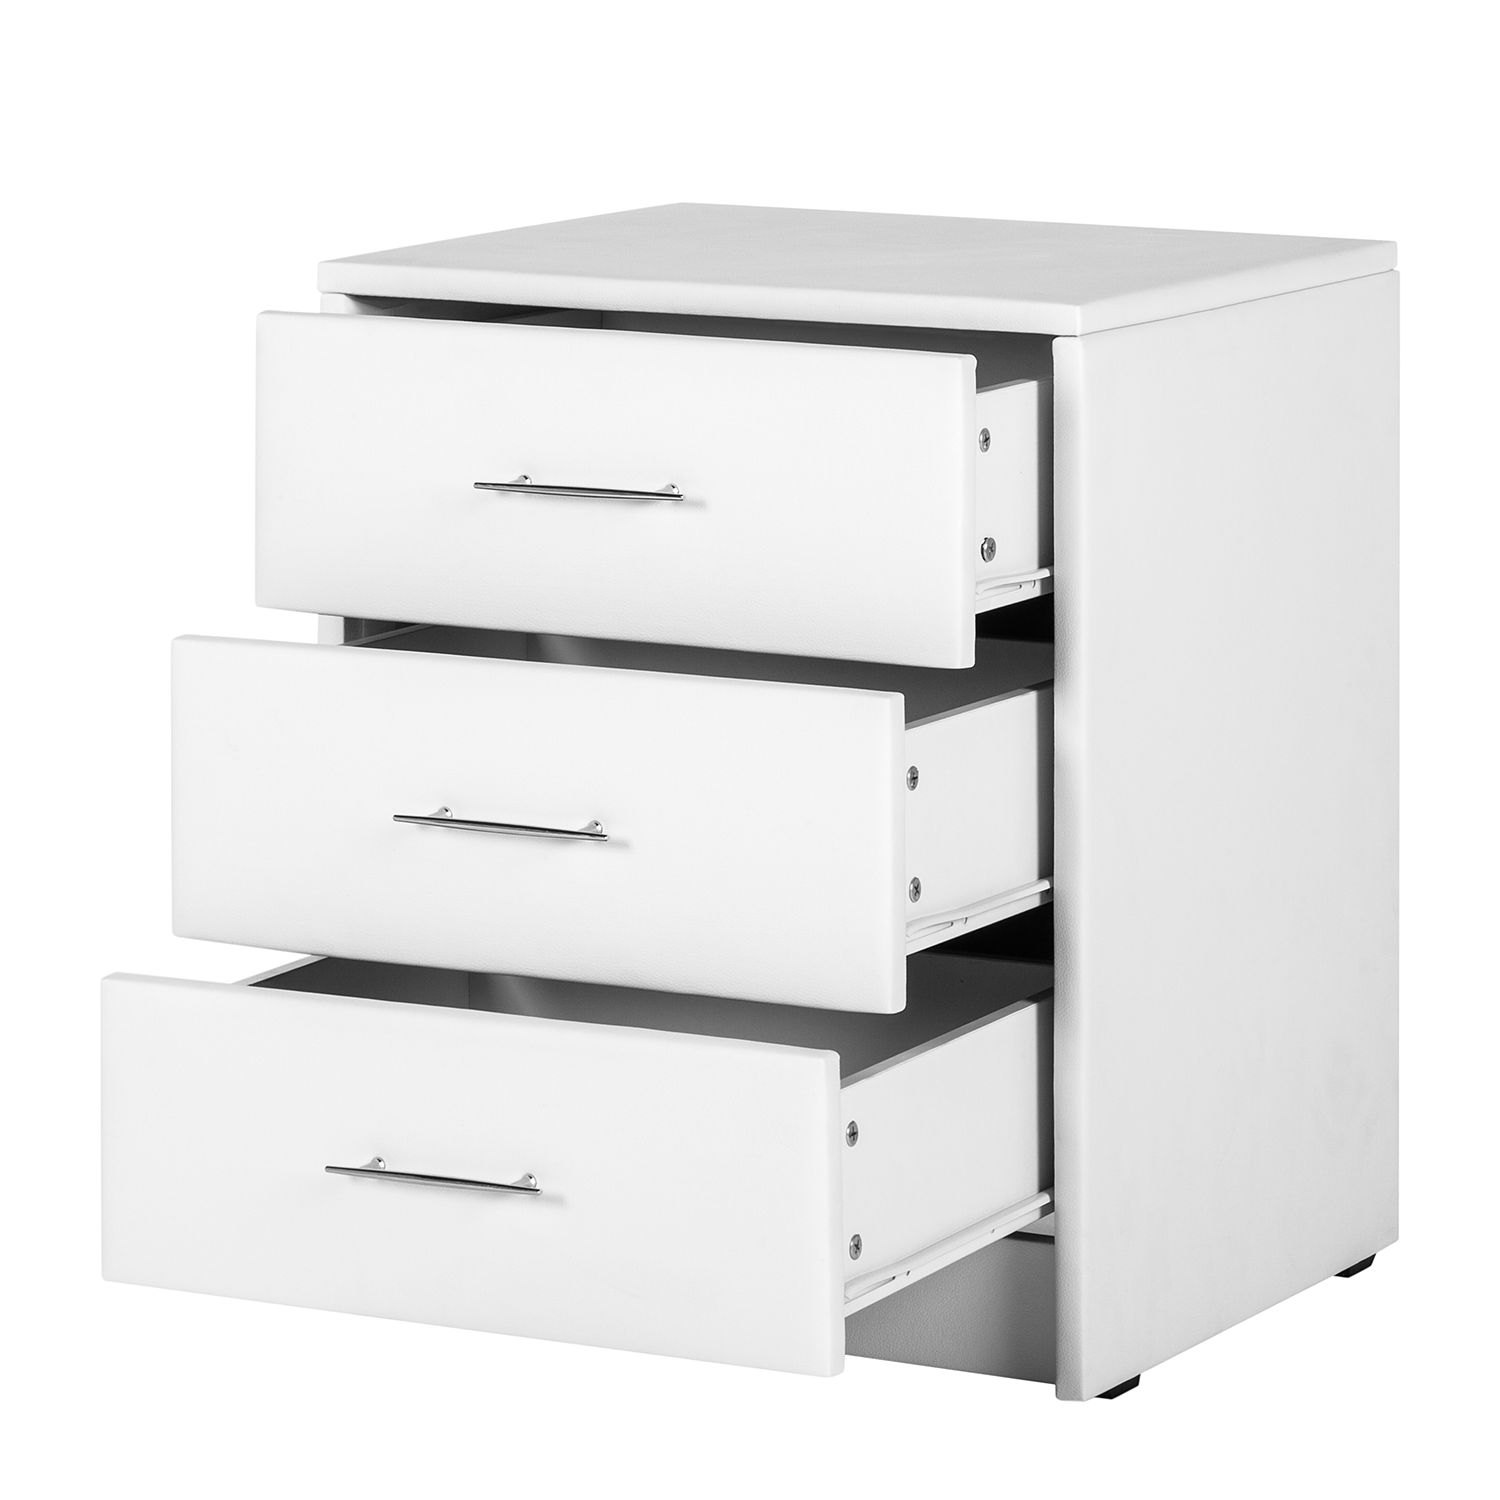 Home 24 - Table de nuit turner ii - cuir synthétique blanc, fredriks